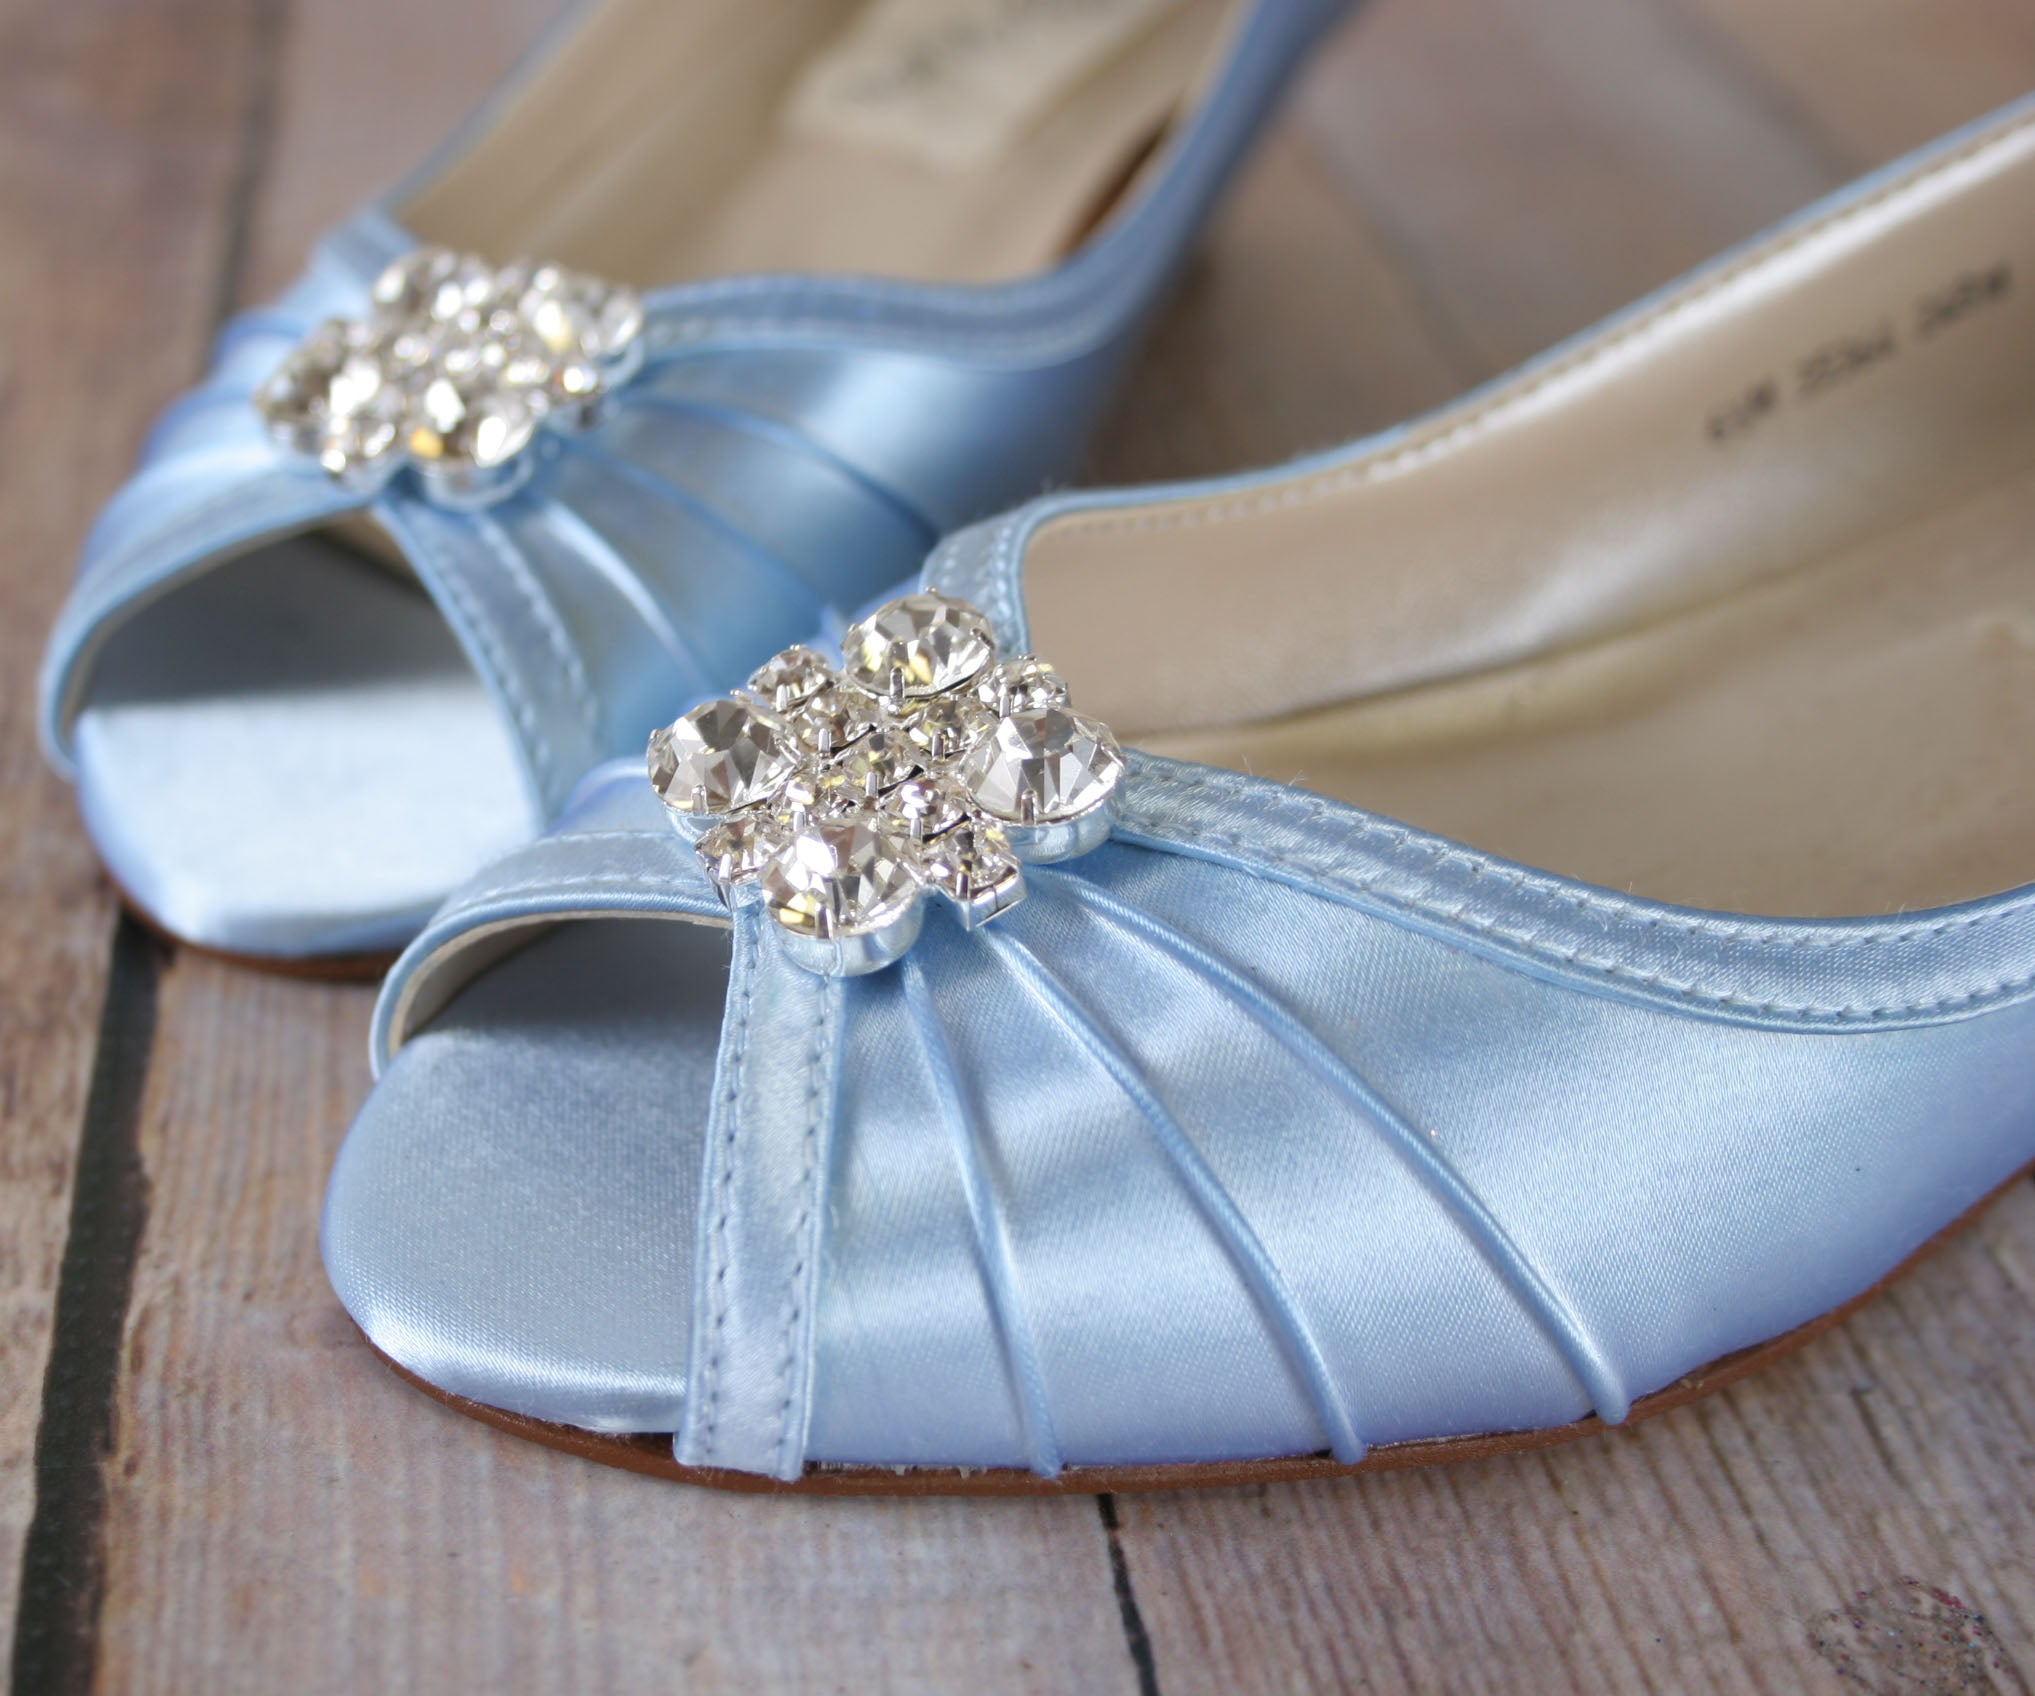 69fbb6c9610 Honey Wedding Shoes with Simple Adornment – Ellie Wren